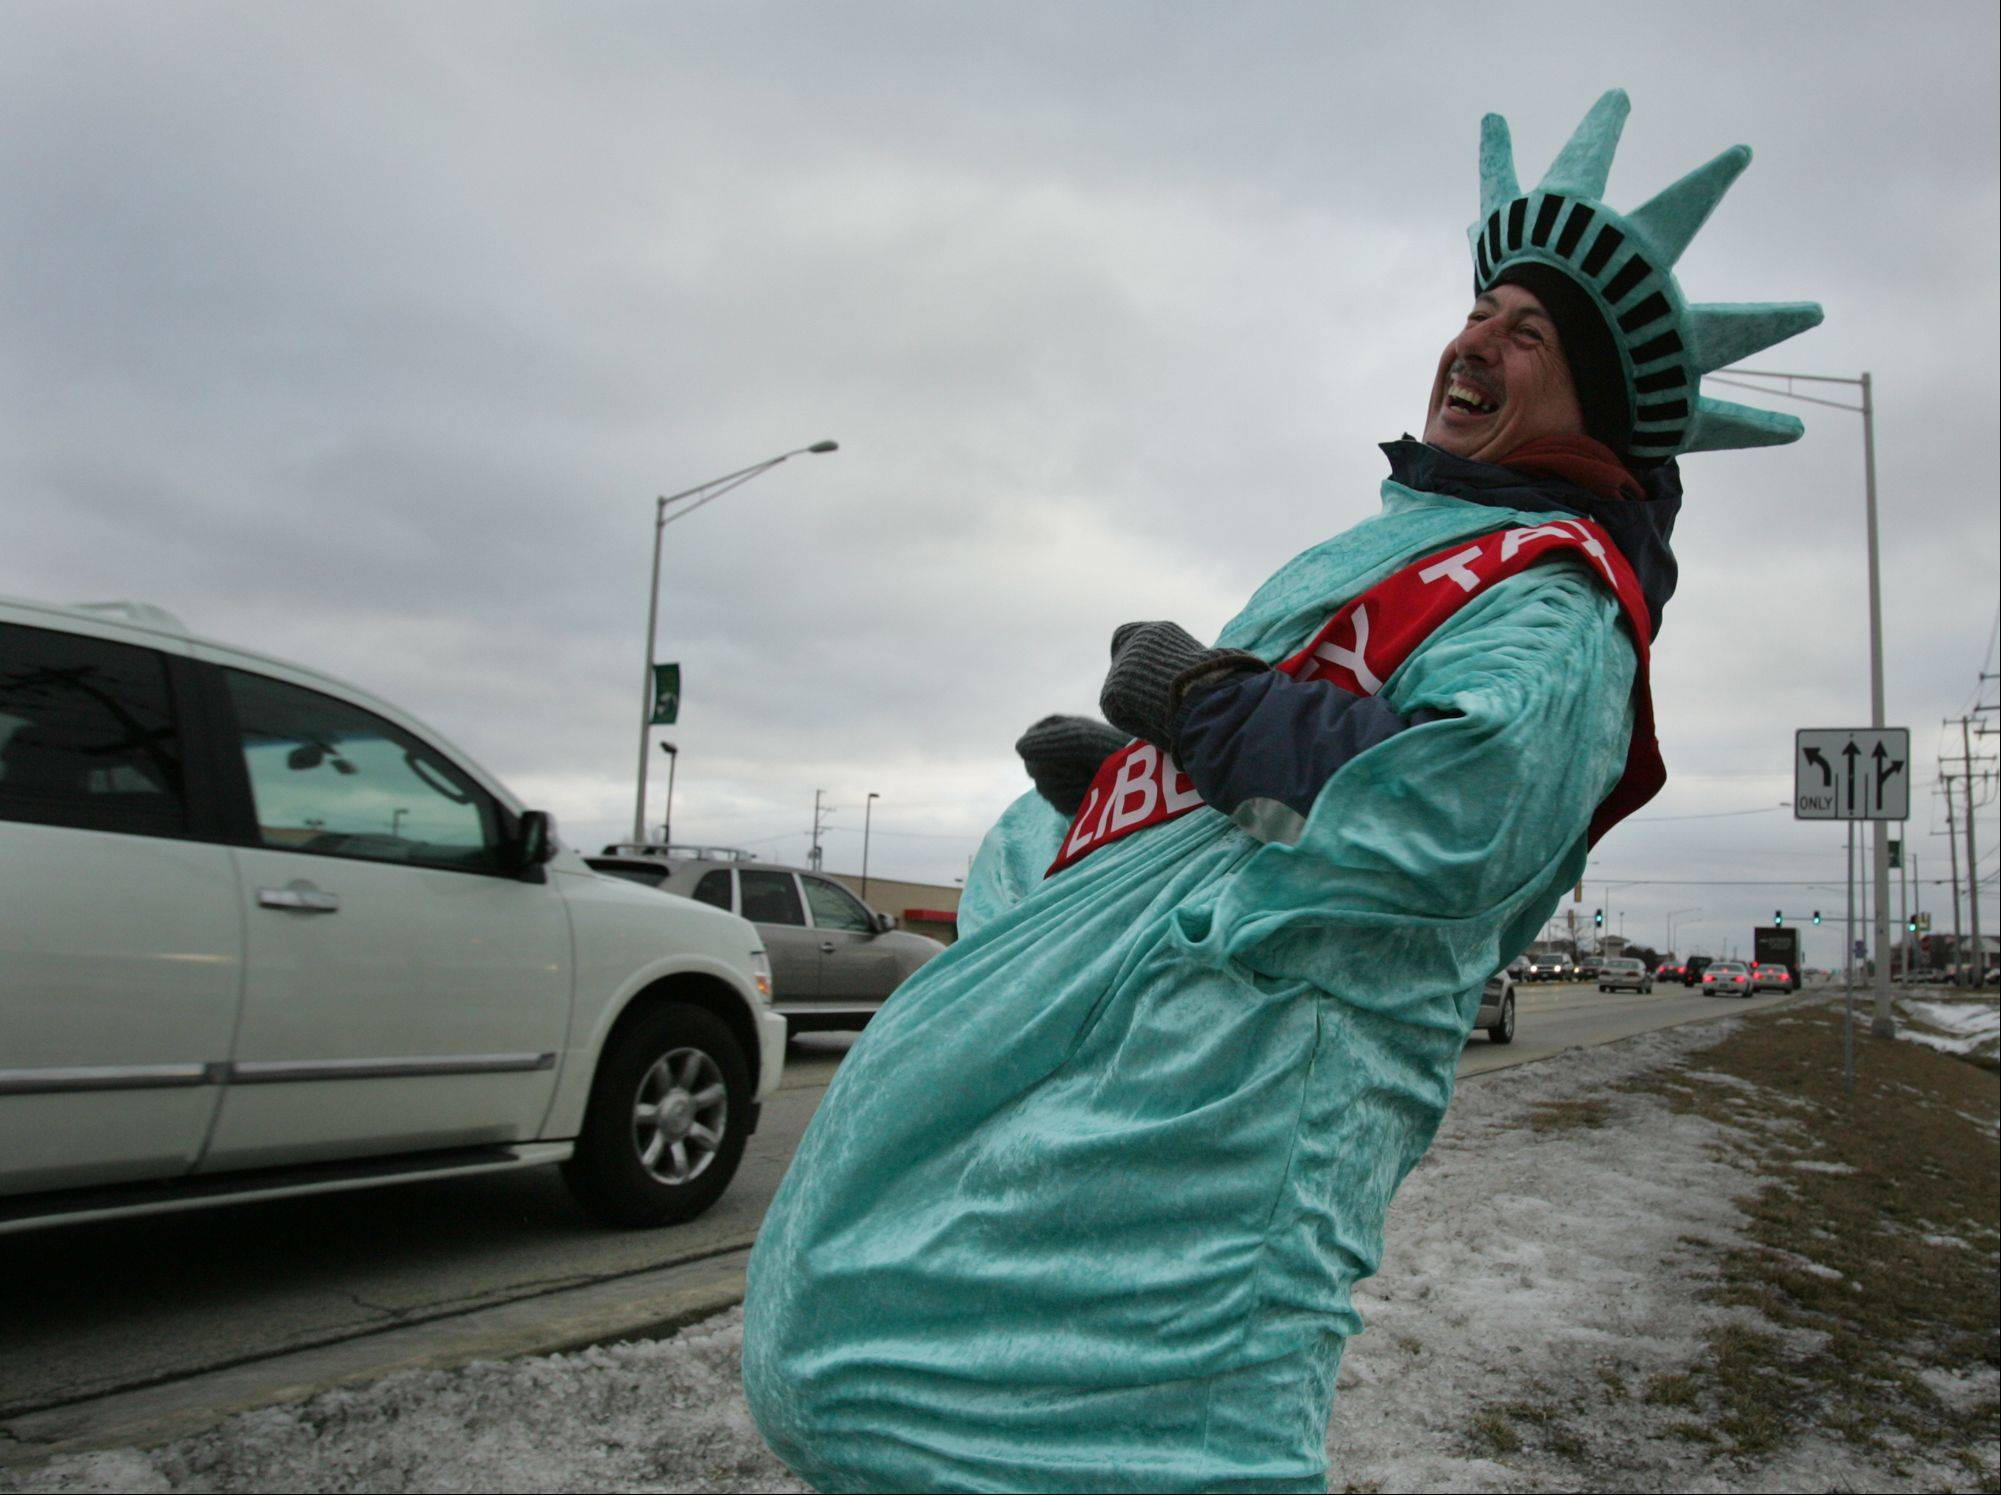 Tim Kelly's job is to dress up as the Statue of Liberty and attract drivers' attention, in the hopes they'll consider Liberty Tax Service for their tax preparation needs.